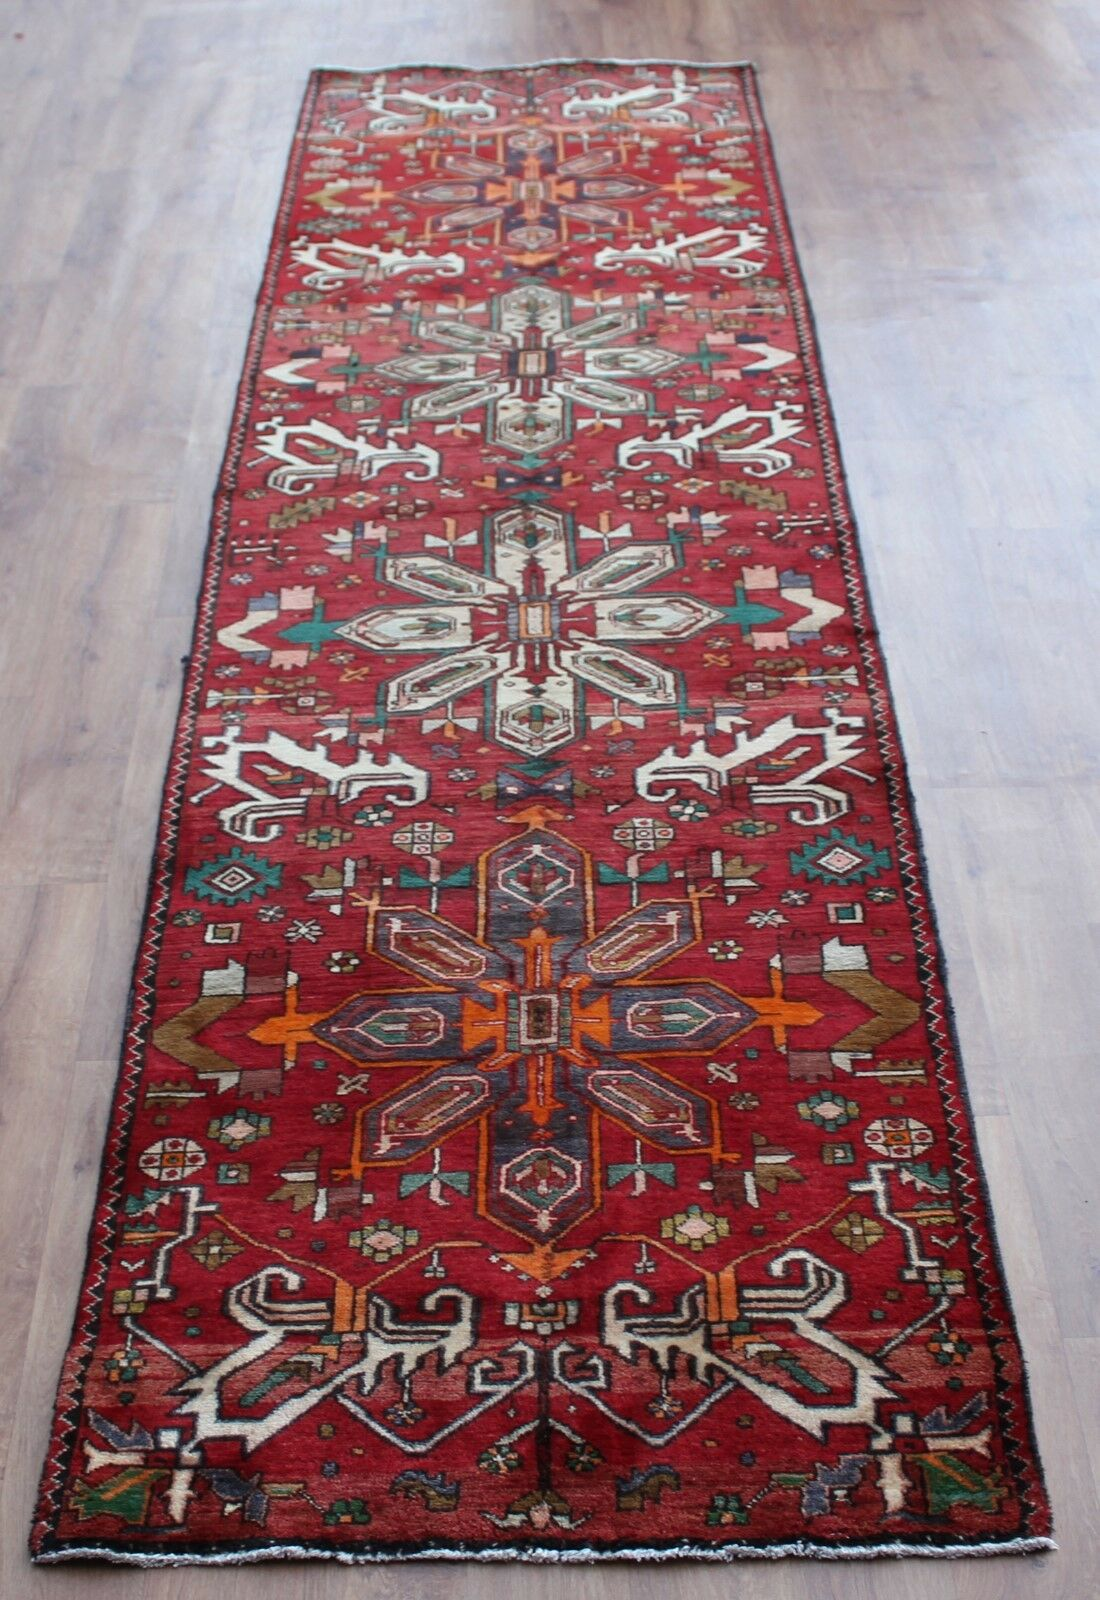 Traditionnel Fait Vintage Laine Fait Traditionnel Main Classique Oriental Area rug carpet 410X92cm1753 c04531